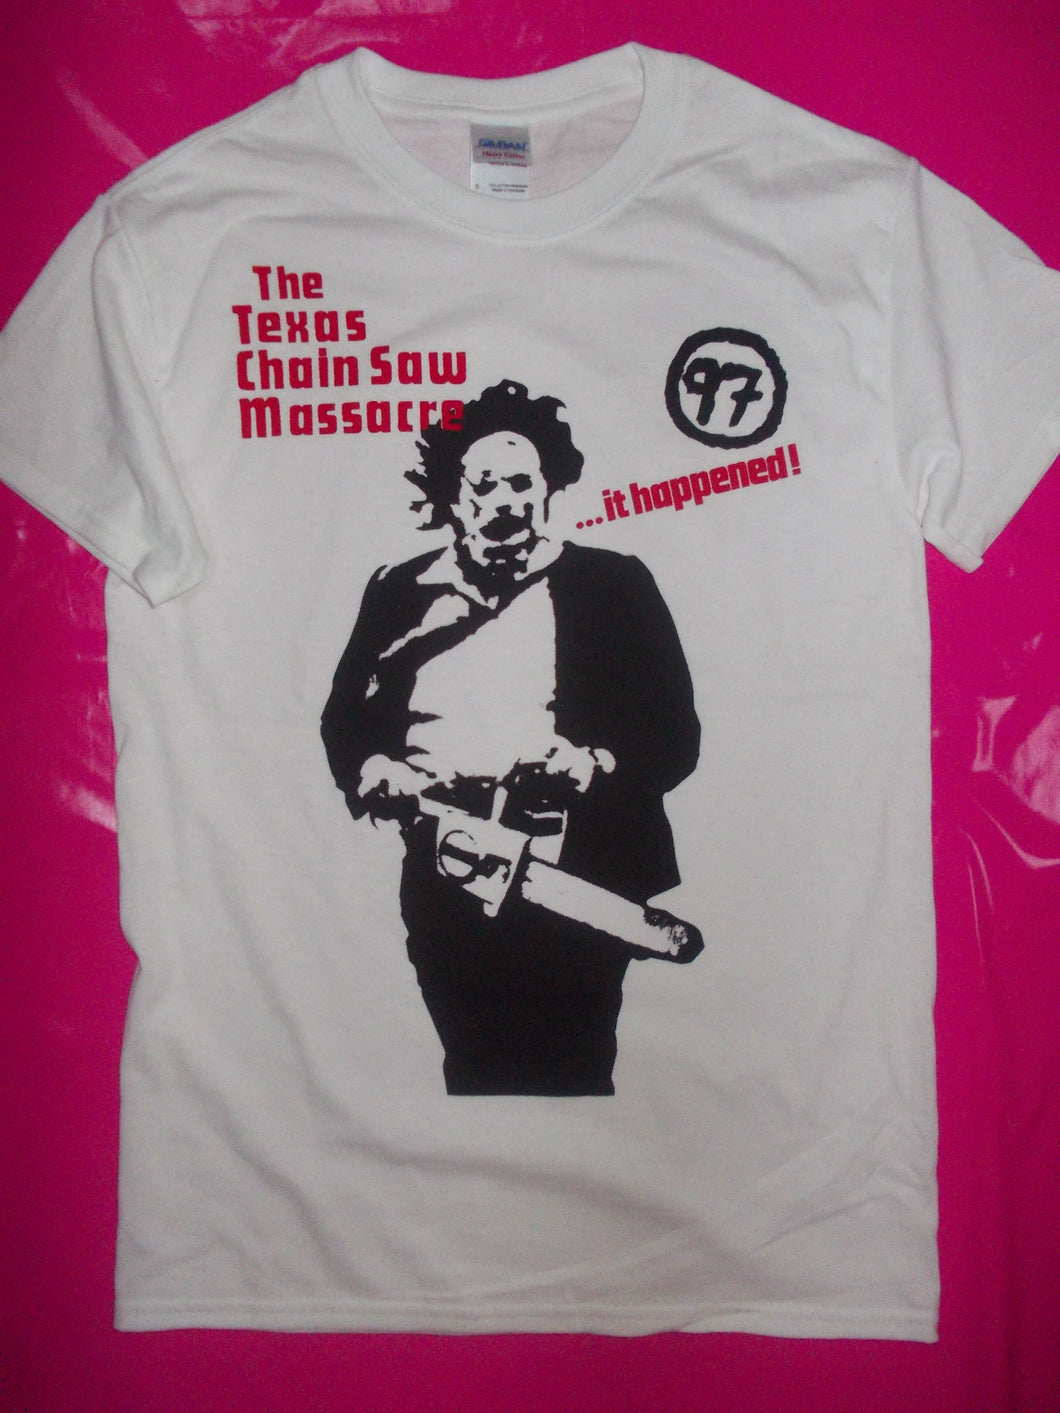 Texas Chainsaw Massacre T-Shirt as worn by Sid Vicious